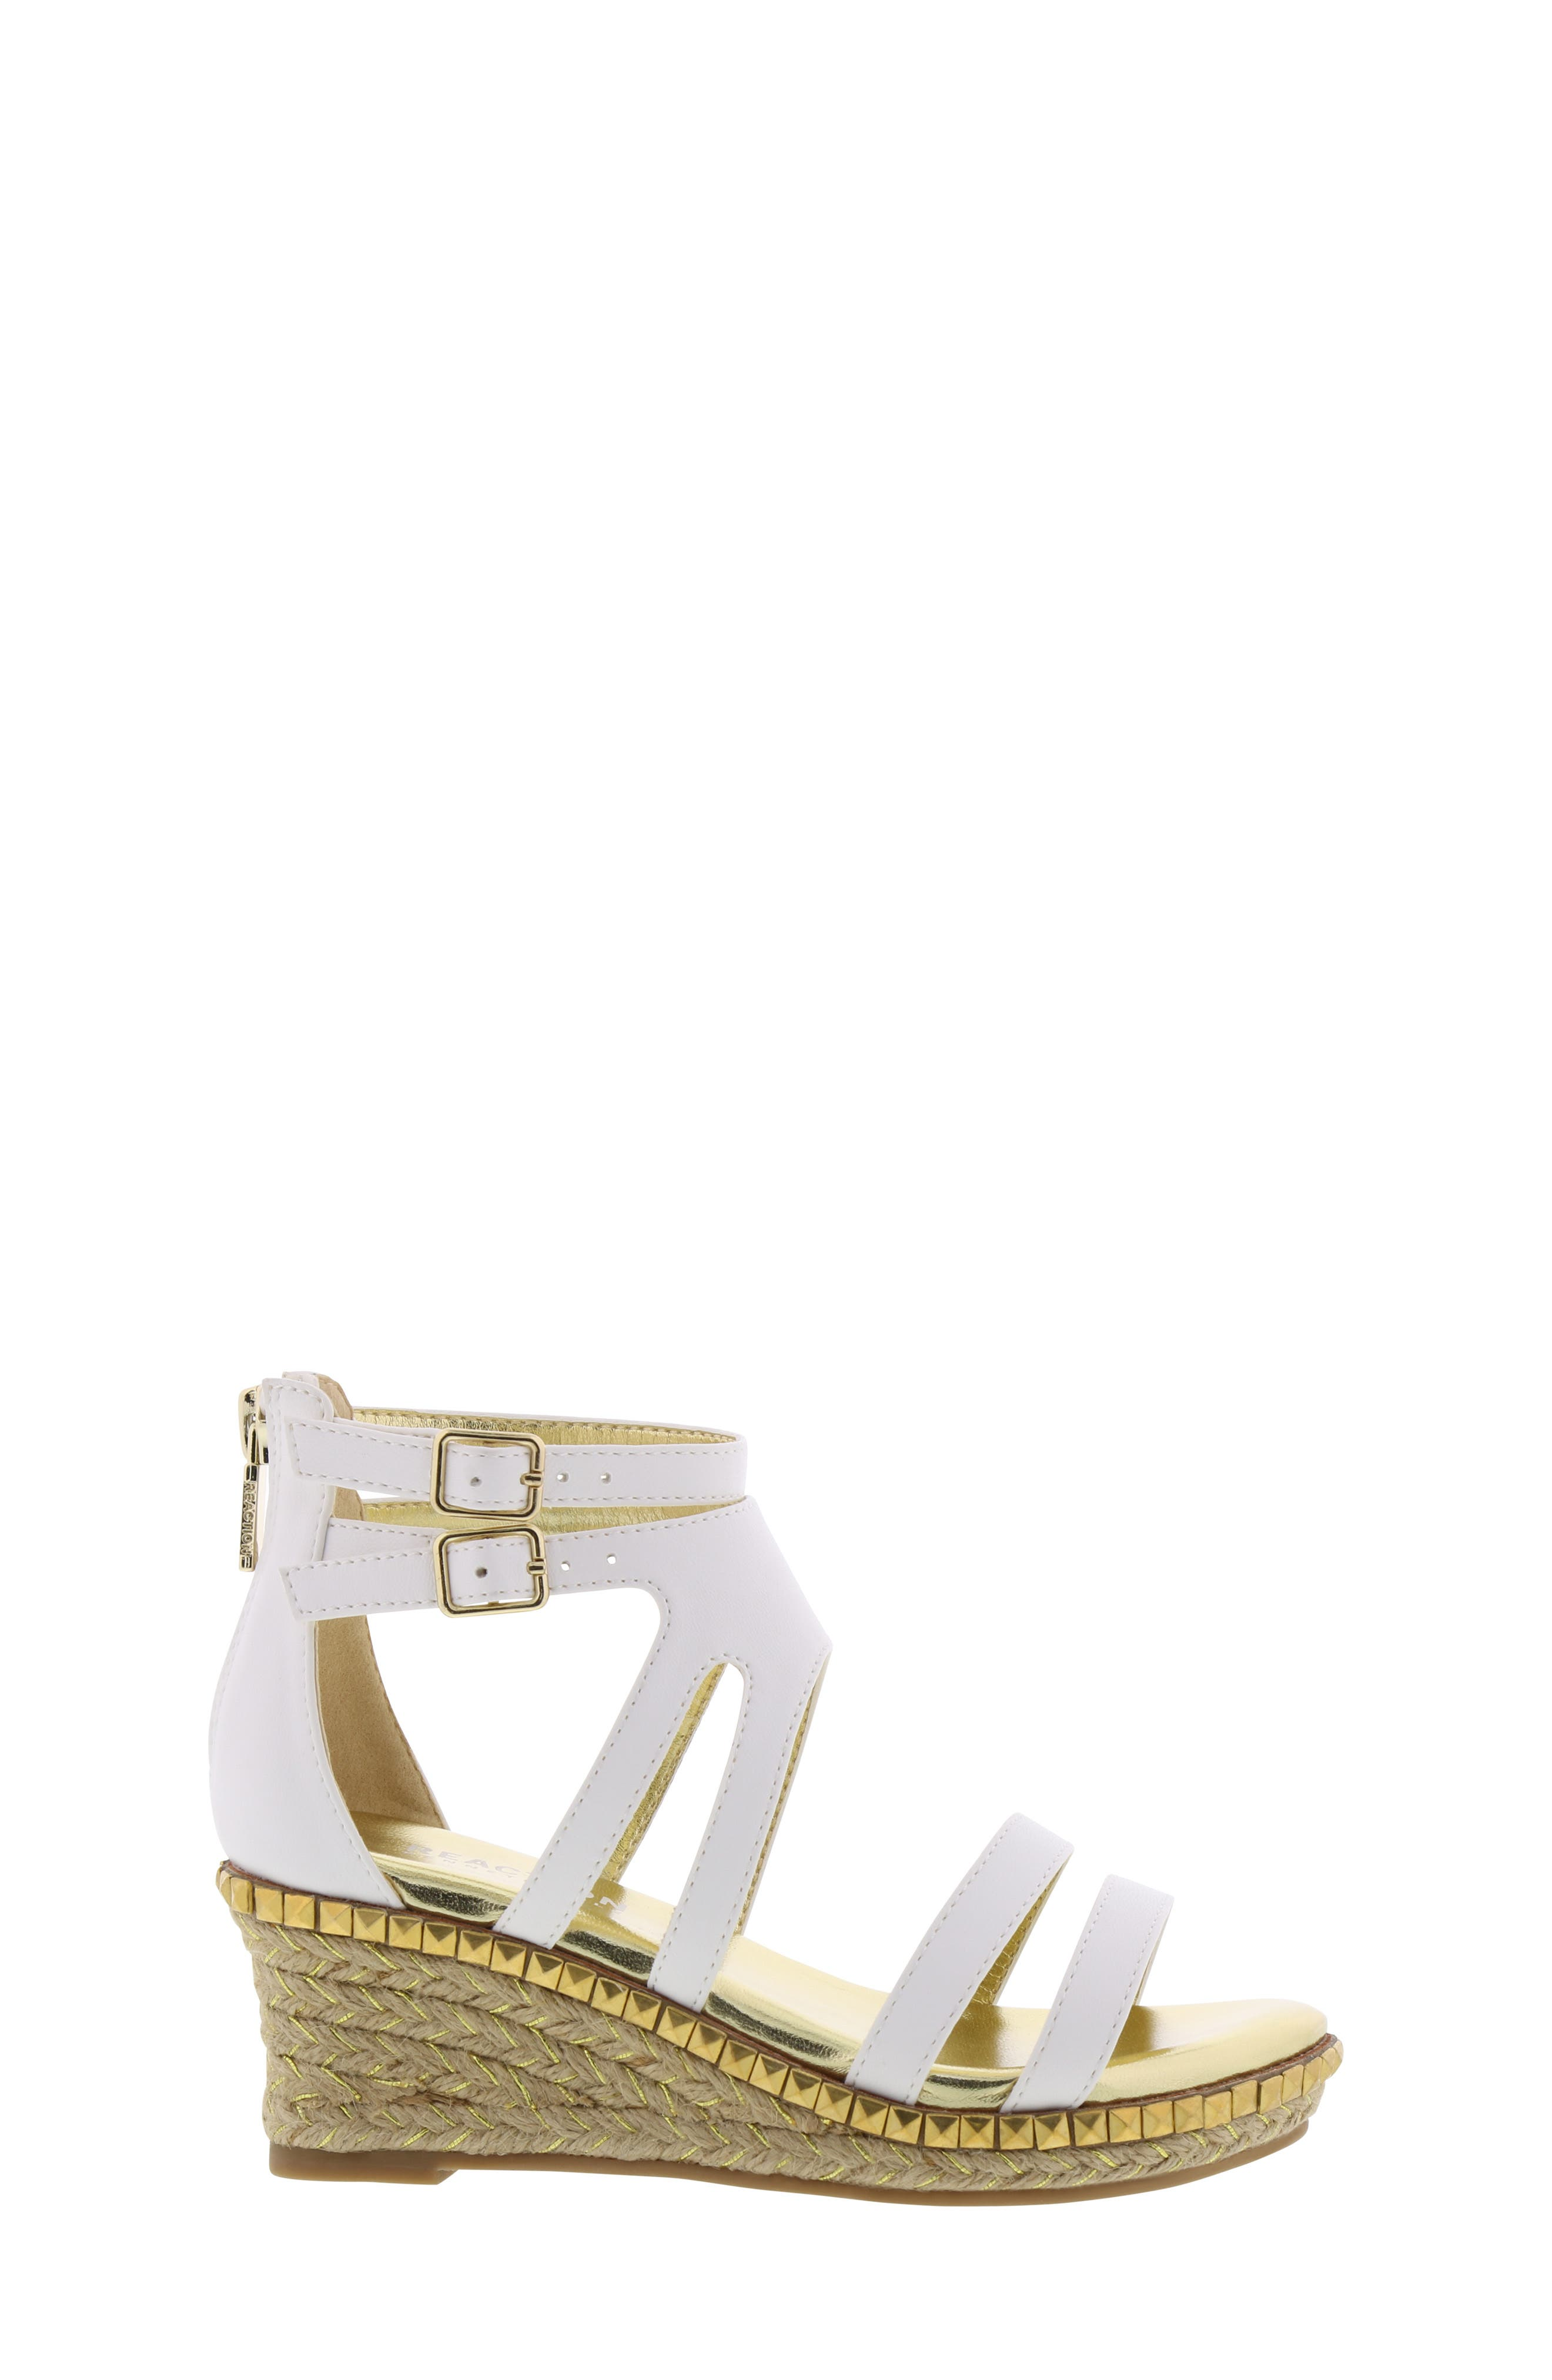 REACTION KENNETH COLE, Reed Splash Wedge Sandal, Alternate thumbnail 3, color, WHITE